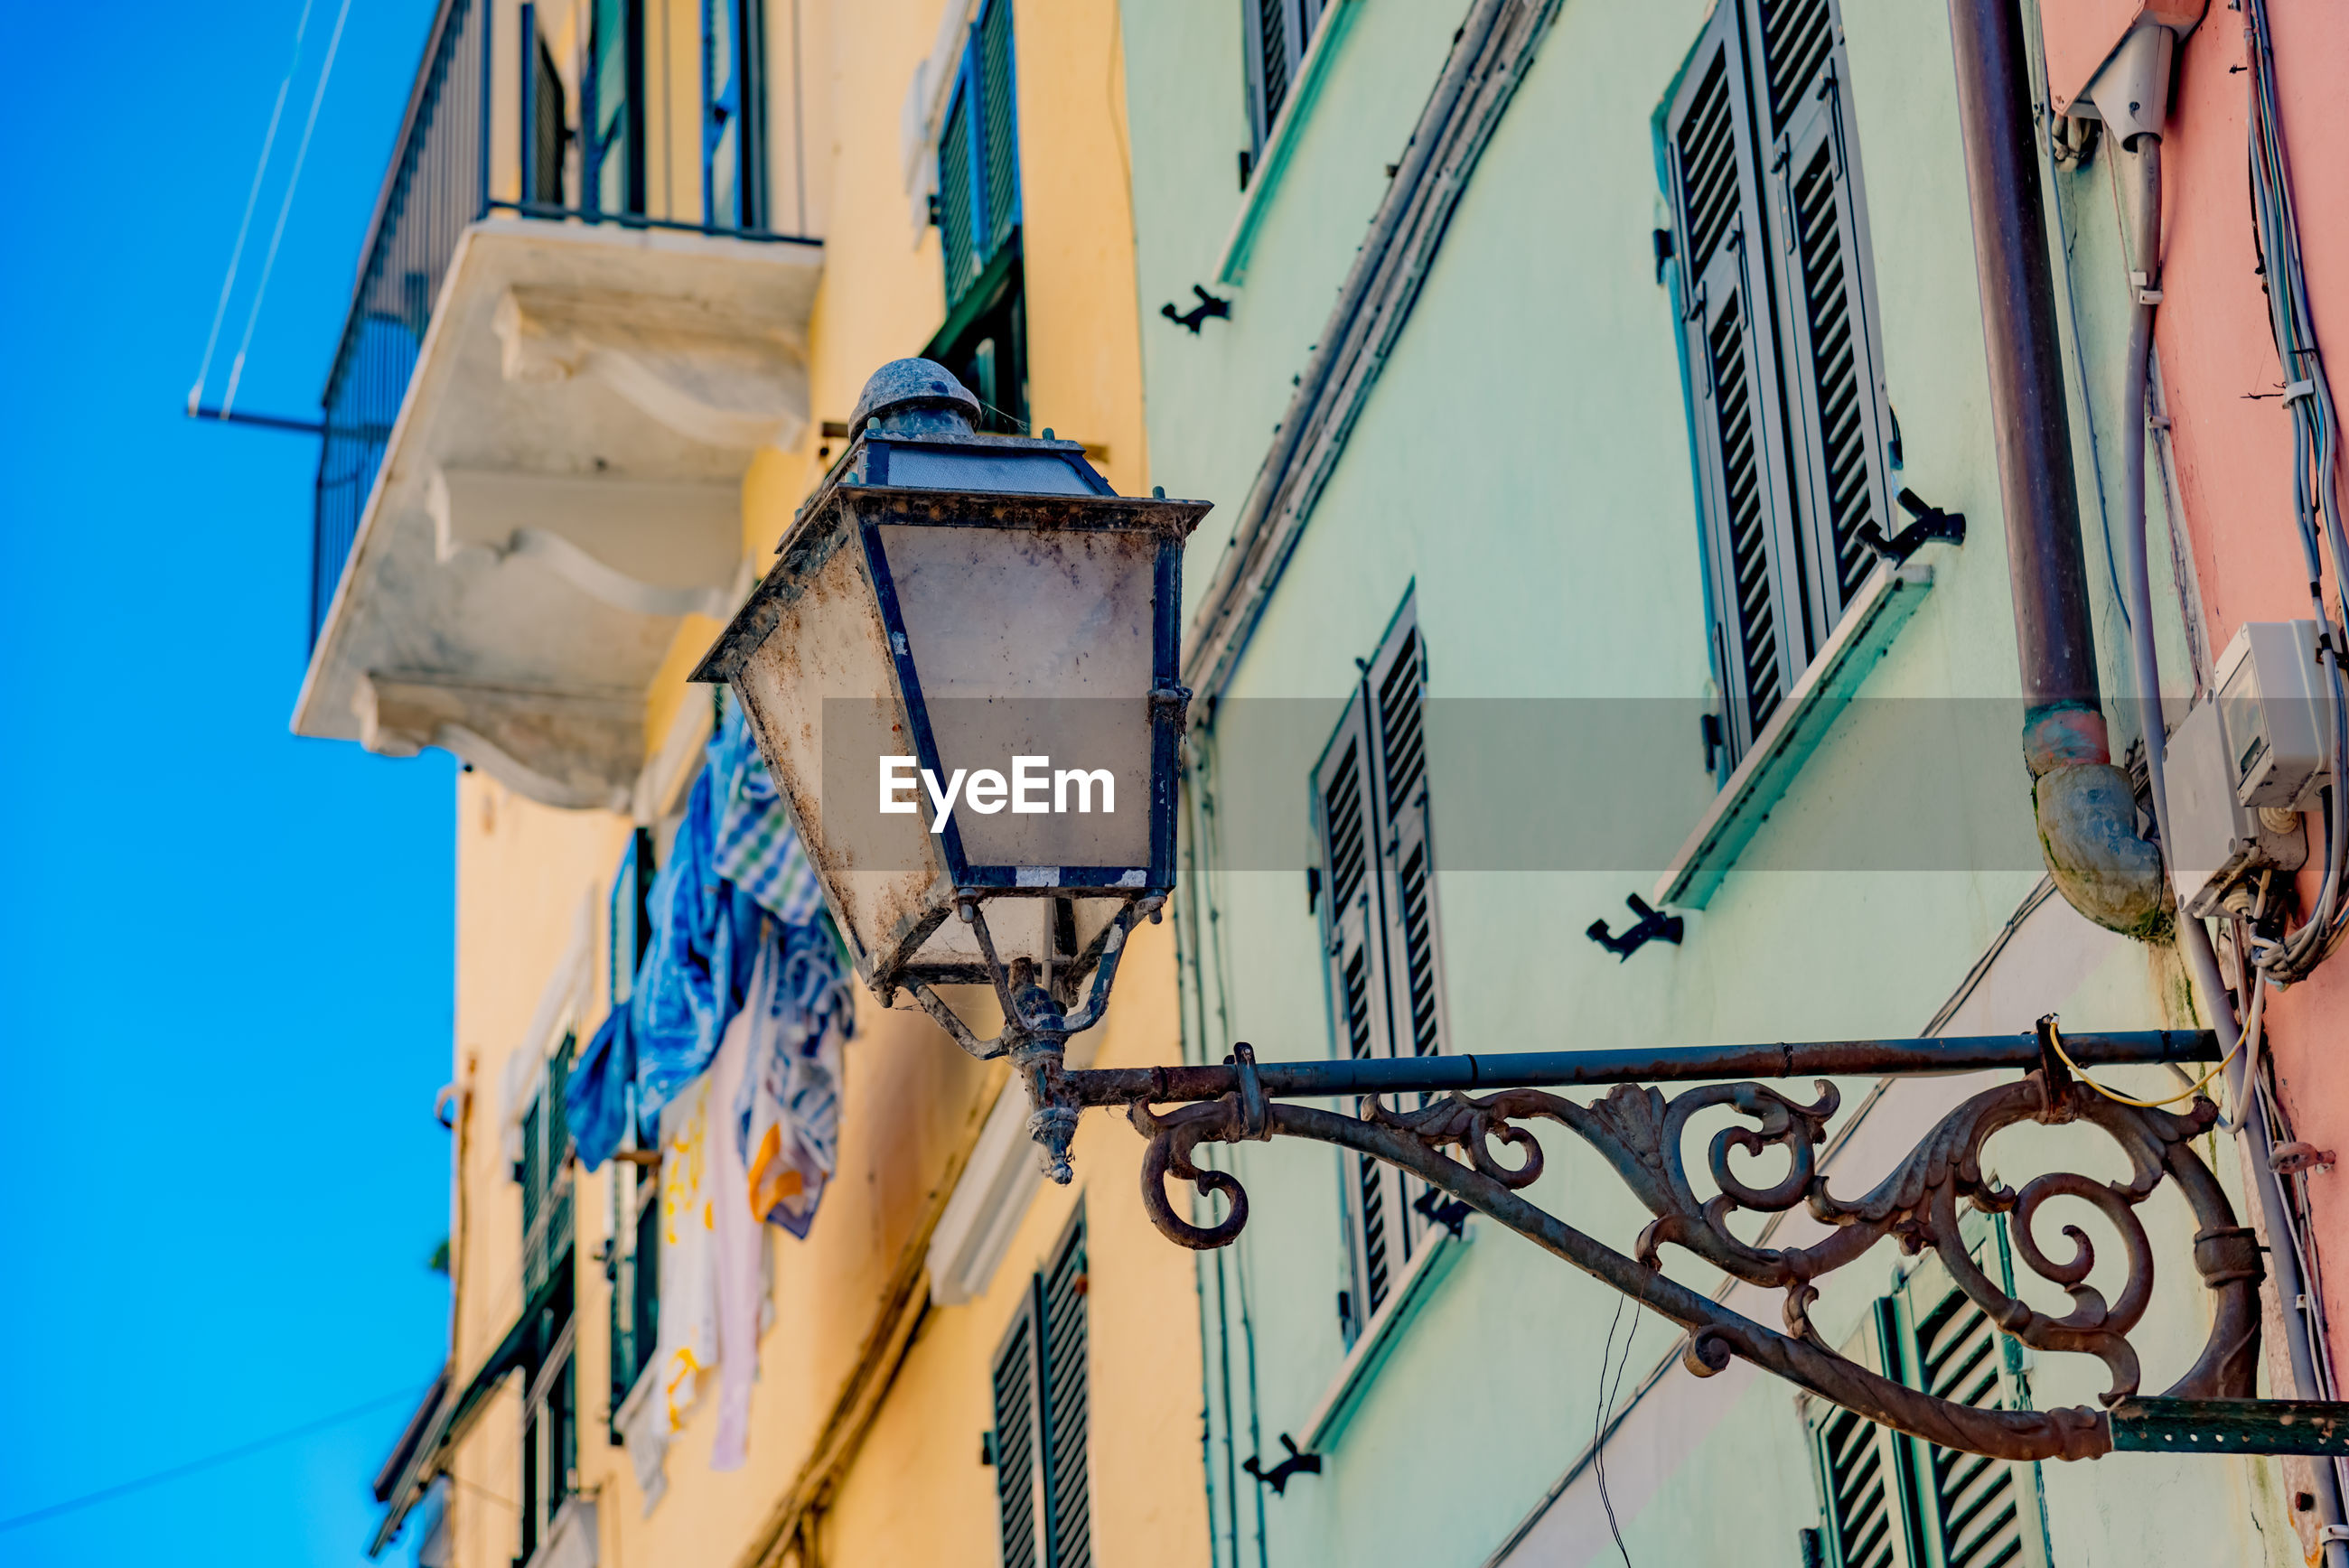 Low angle view of lighting equipment on building at riomaggiore